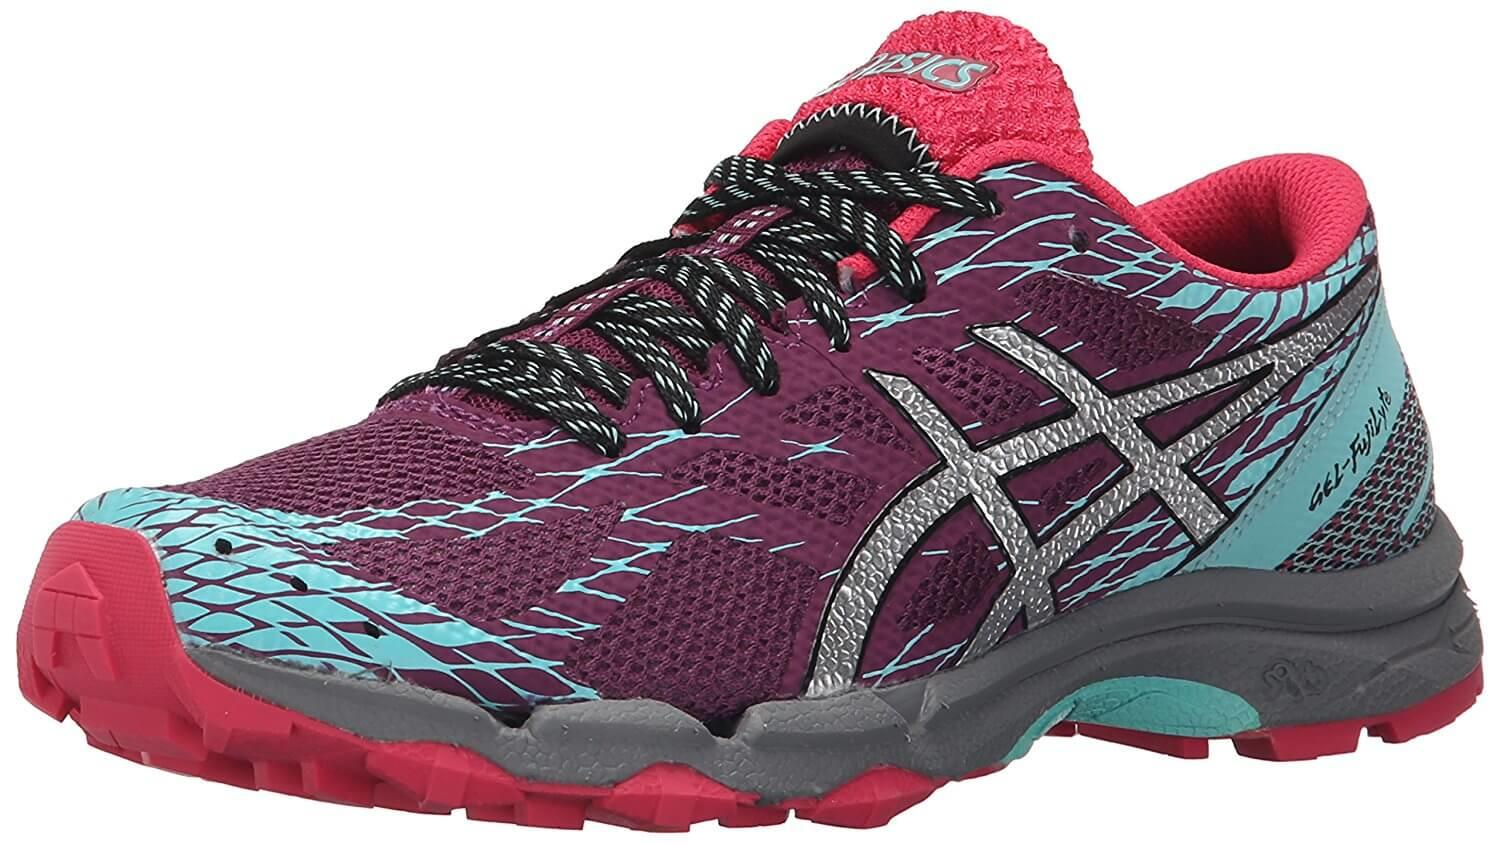 Asics Gel Fujilyte neutral trail shoe